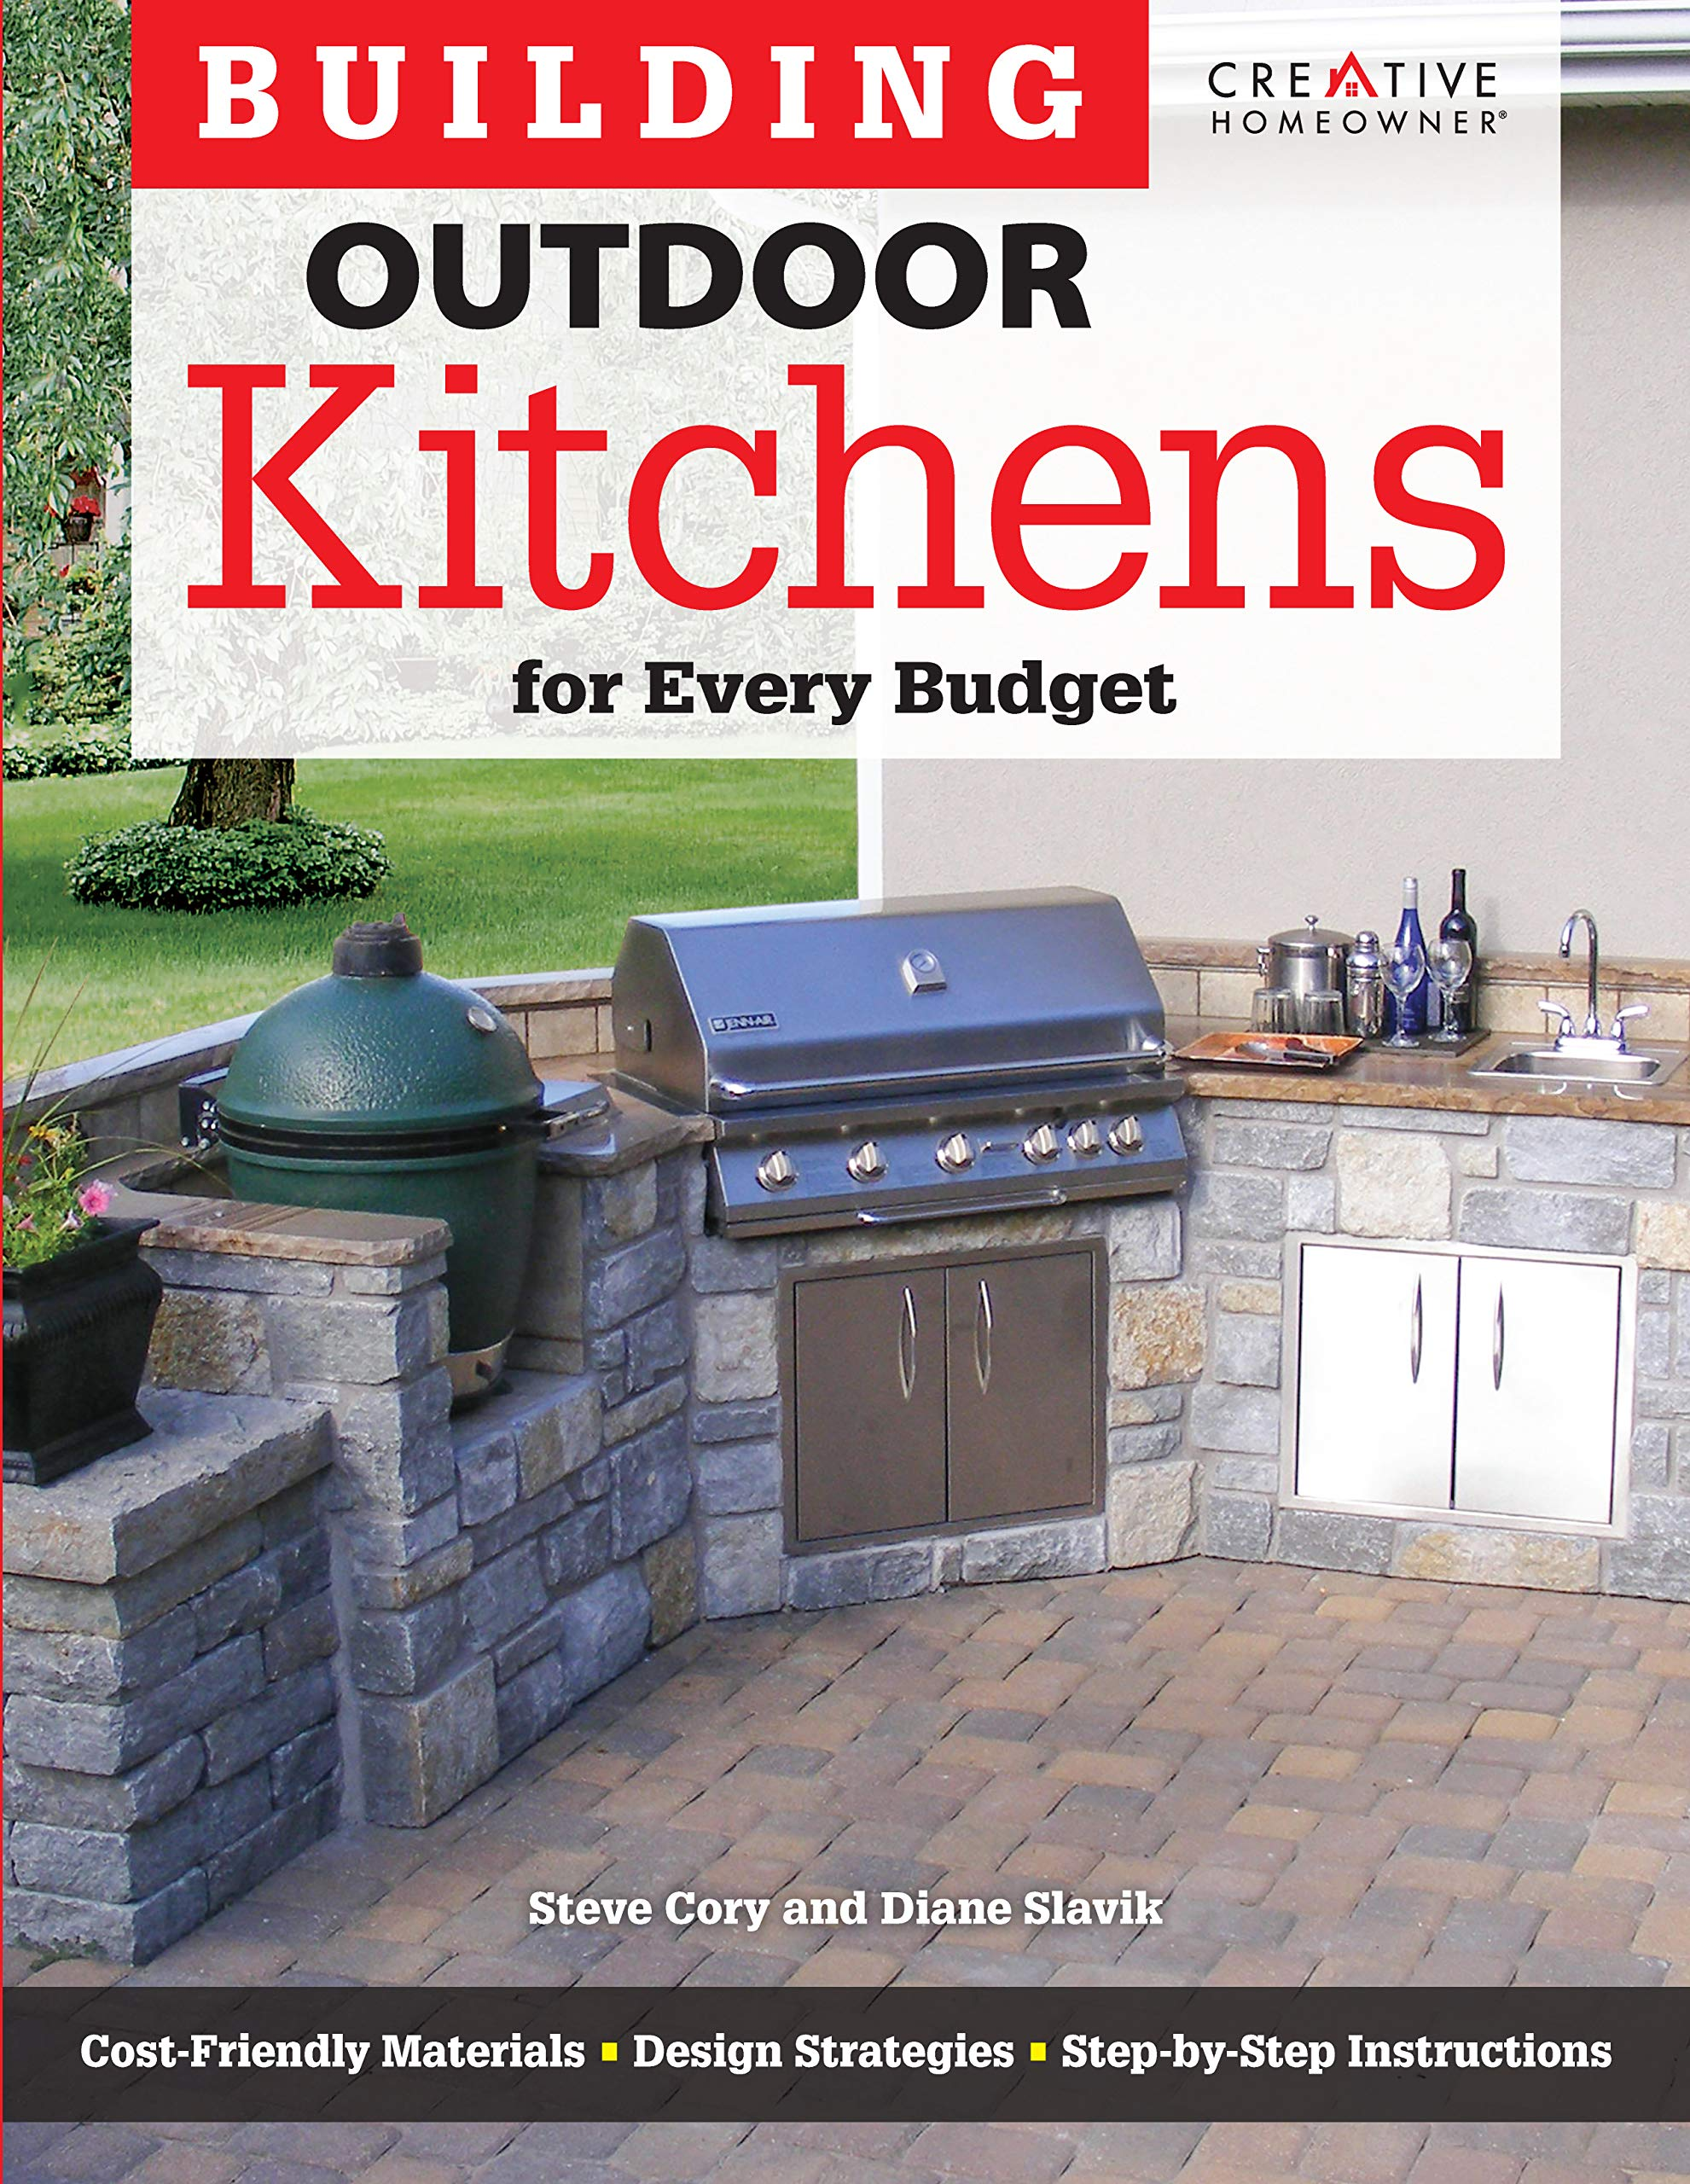 Building Outdoor Kitchens for Every Budget (Creative Homeowner) DIY Instructions and Over 300 Photos to Bring Attractive, Functional Kitchens within Reach of Budget-Conscious Homeowners by Design Originals